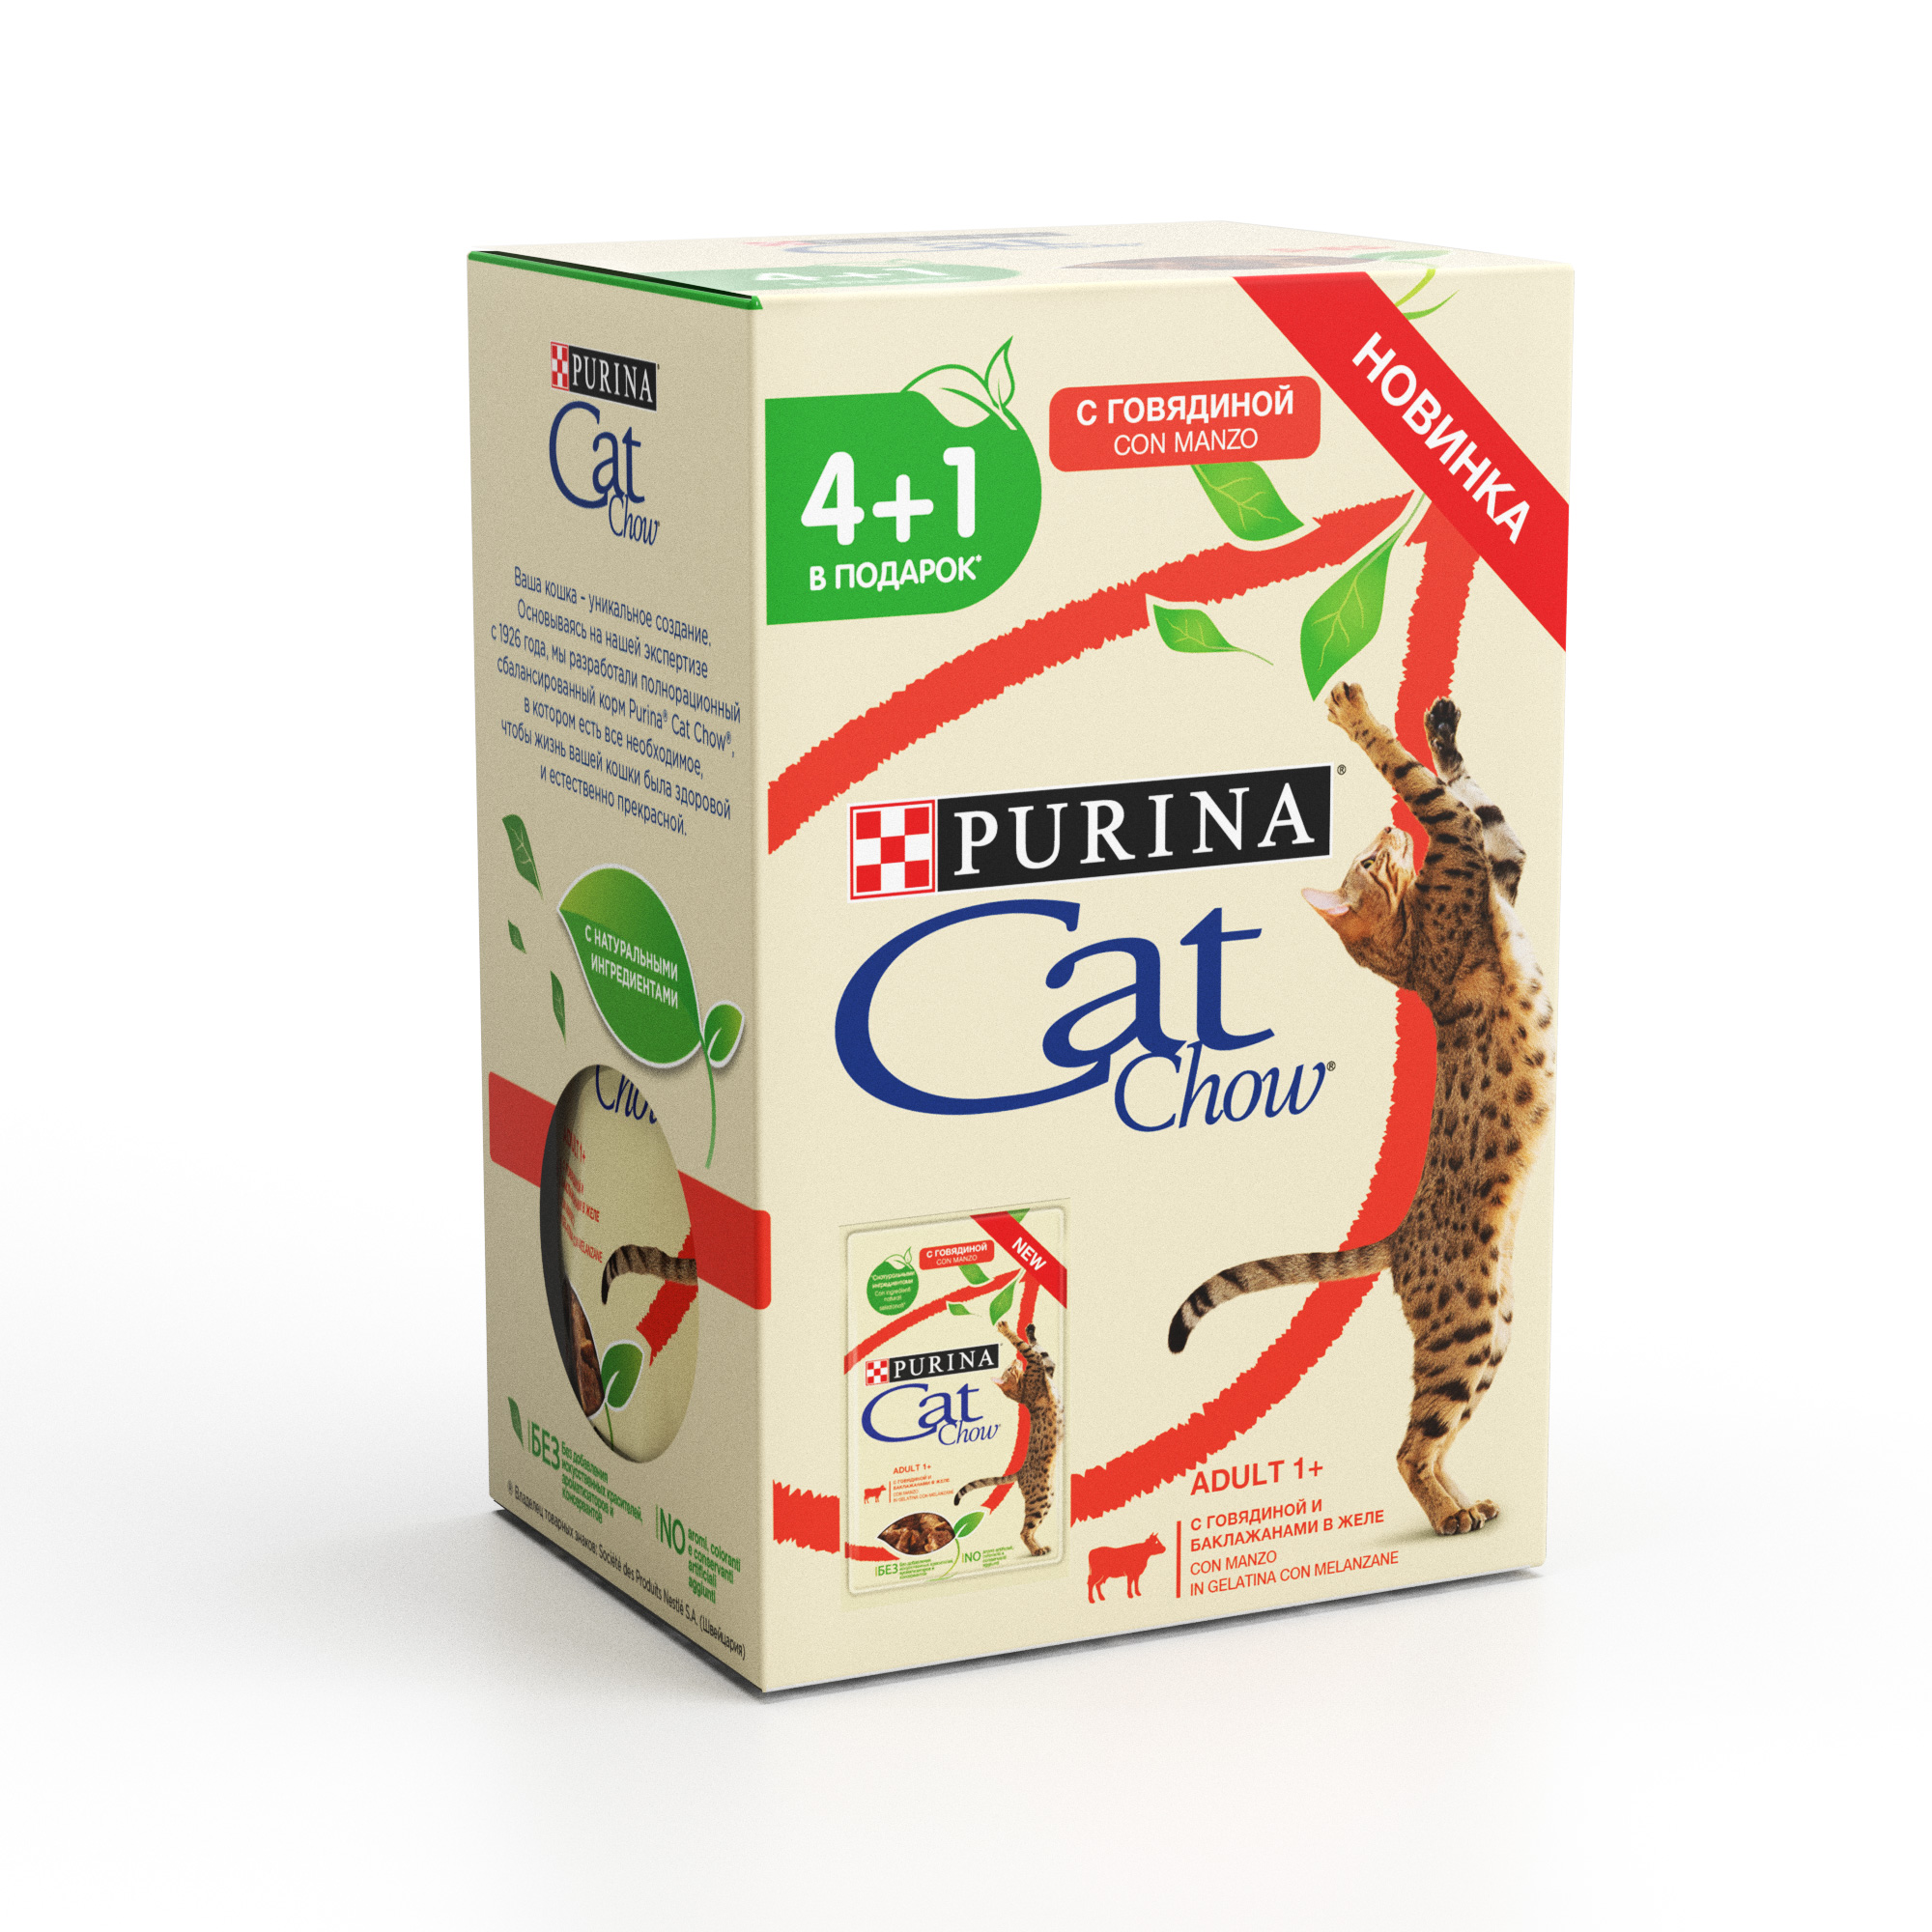 Promopak set: Cat Chow Wet Feed for Adult Cats with beef and eggplant, 60 pouch (12 x (4 + 1)) x 85 g потребительские товары oem neato 4 x 4 x neato botvac 70 75 80 85 silicone blades and brushes for neato botvac